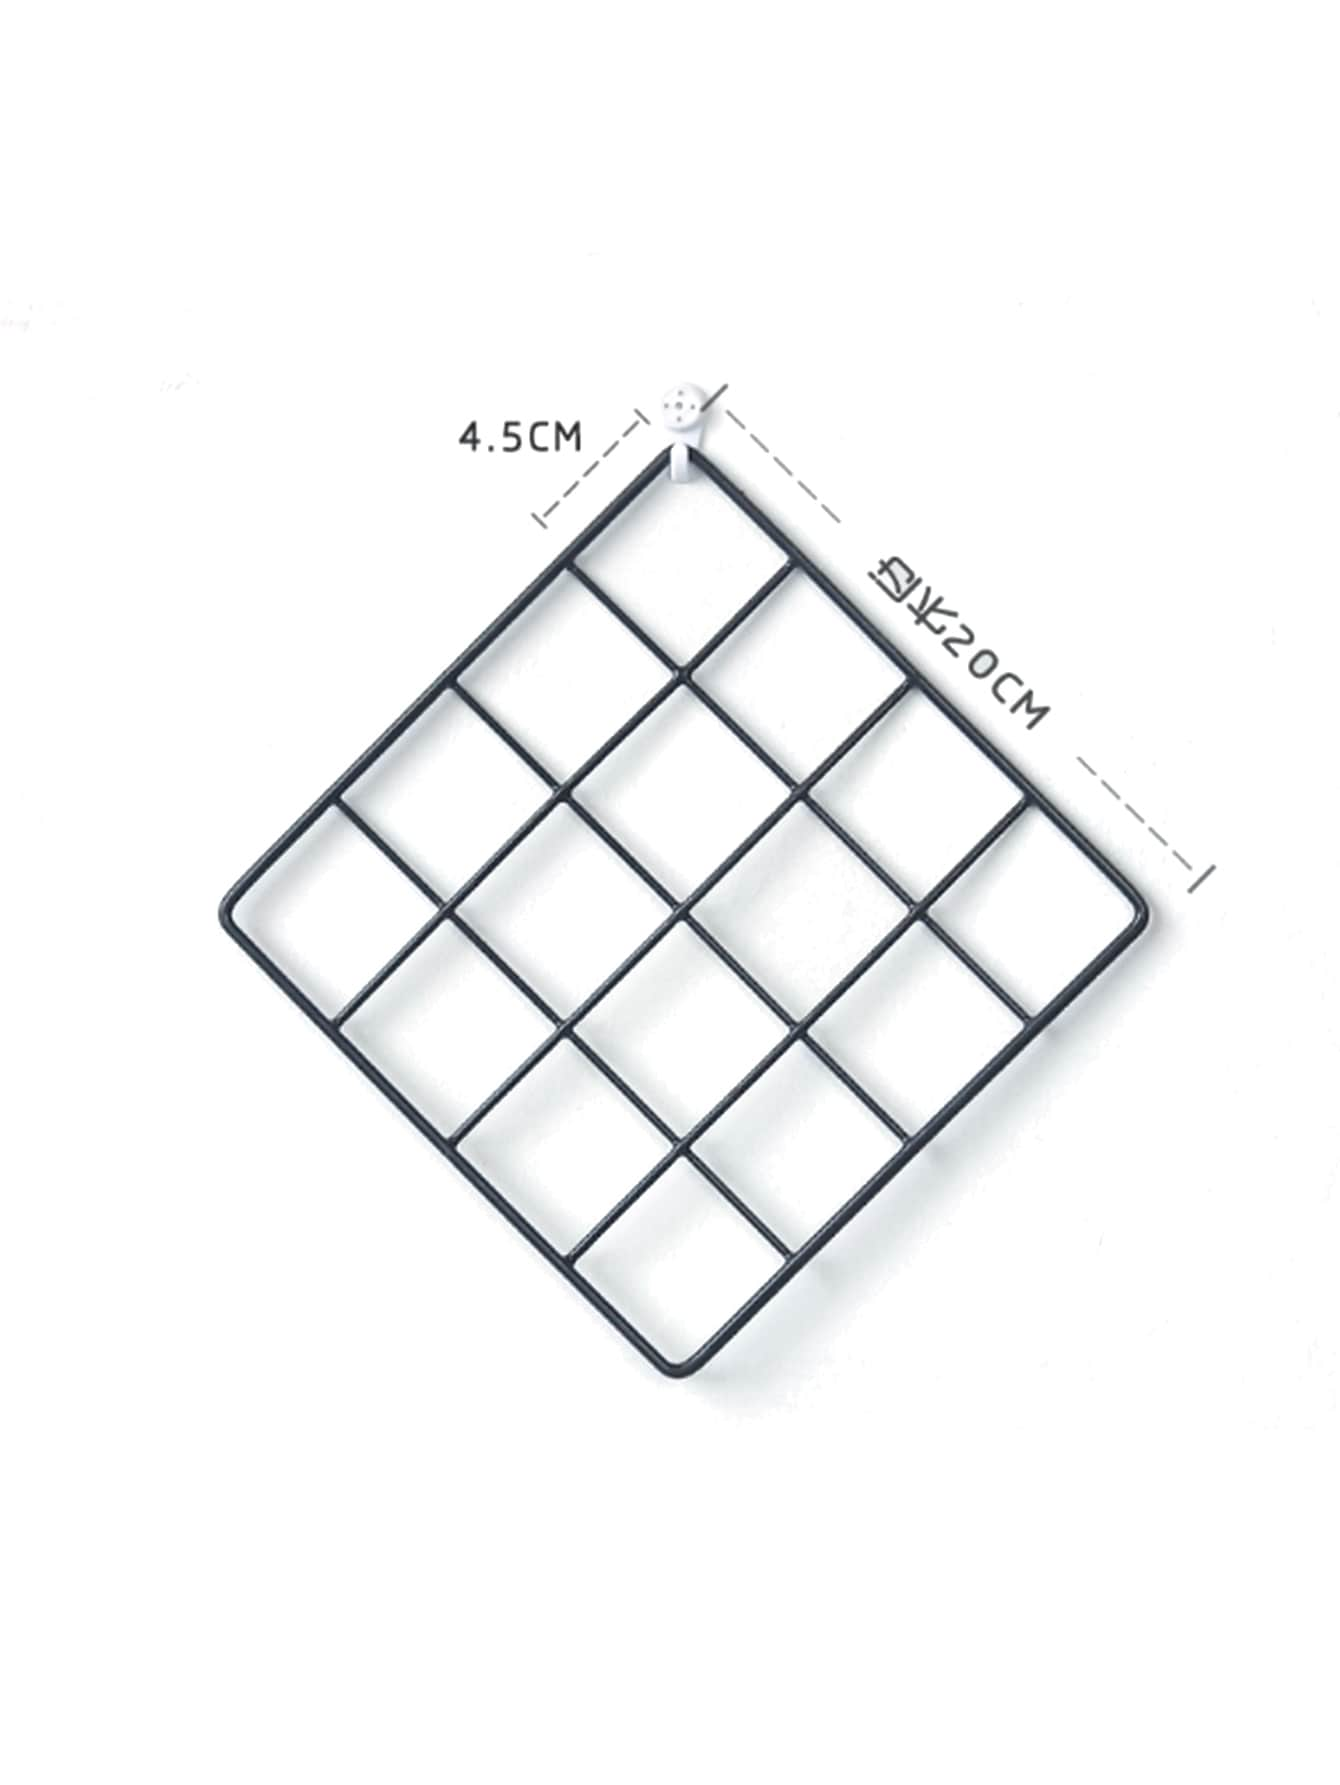 16 Grid Wall Rack 1pc